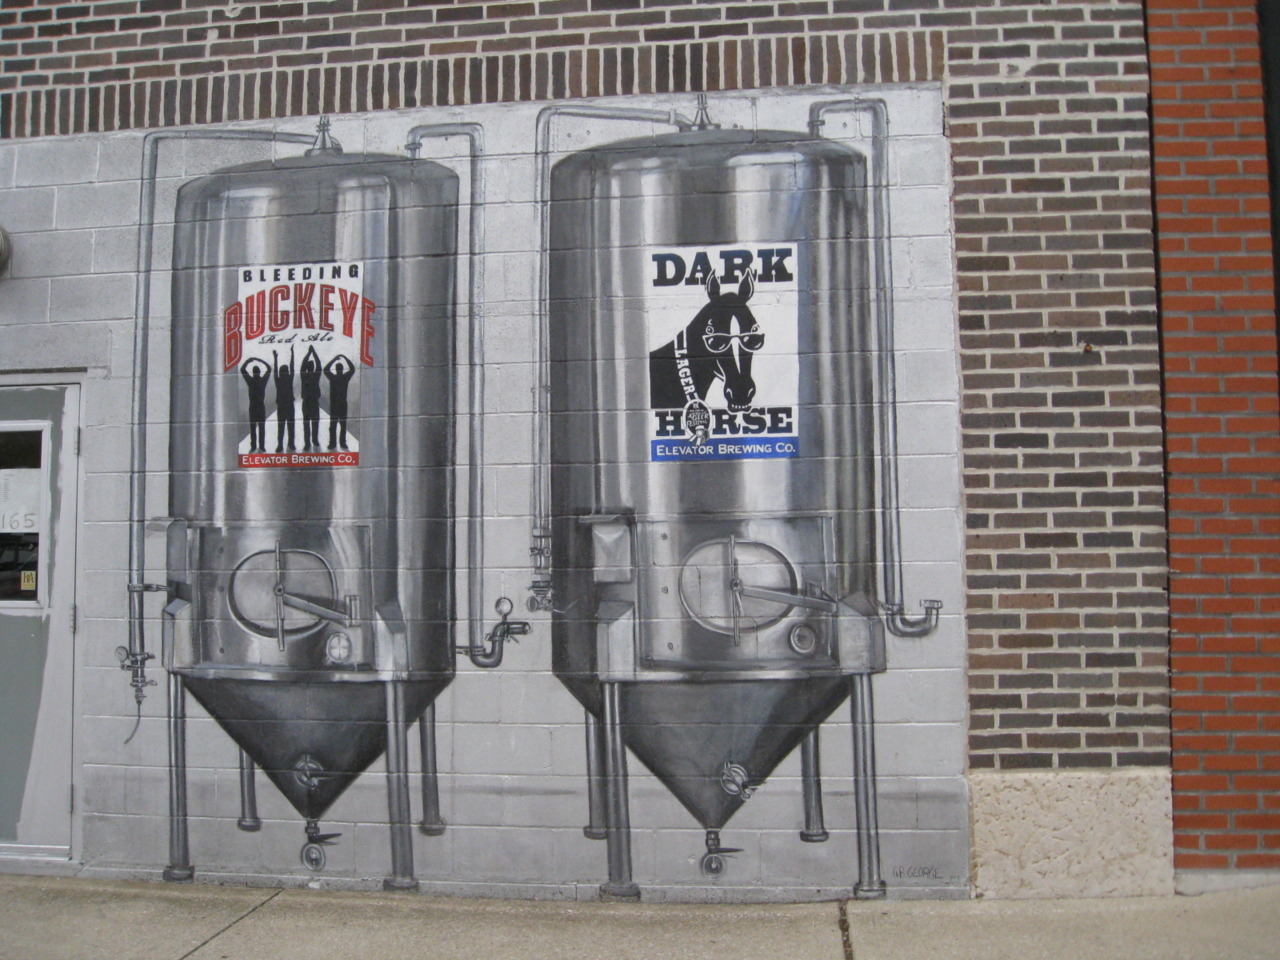 As seen on the way home on 4th Street - two of Elevator Brewery's best.